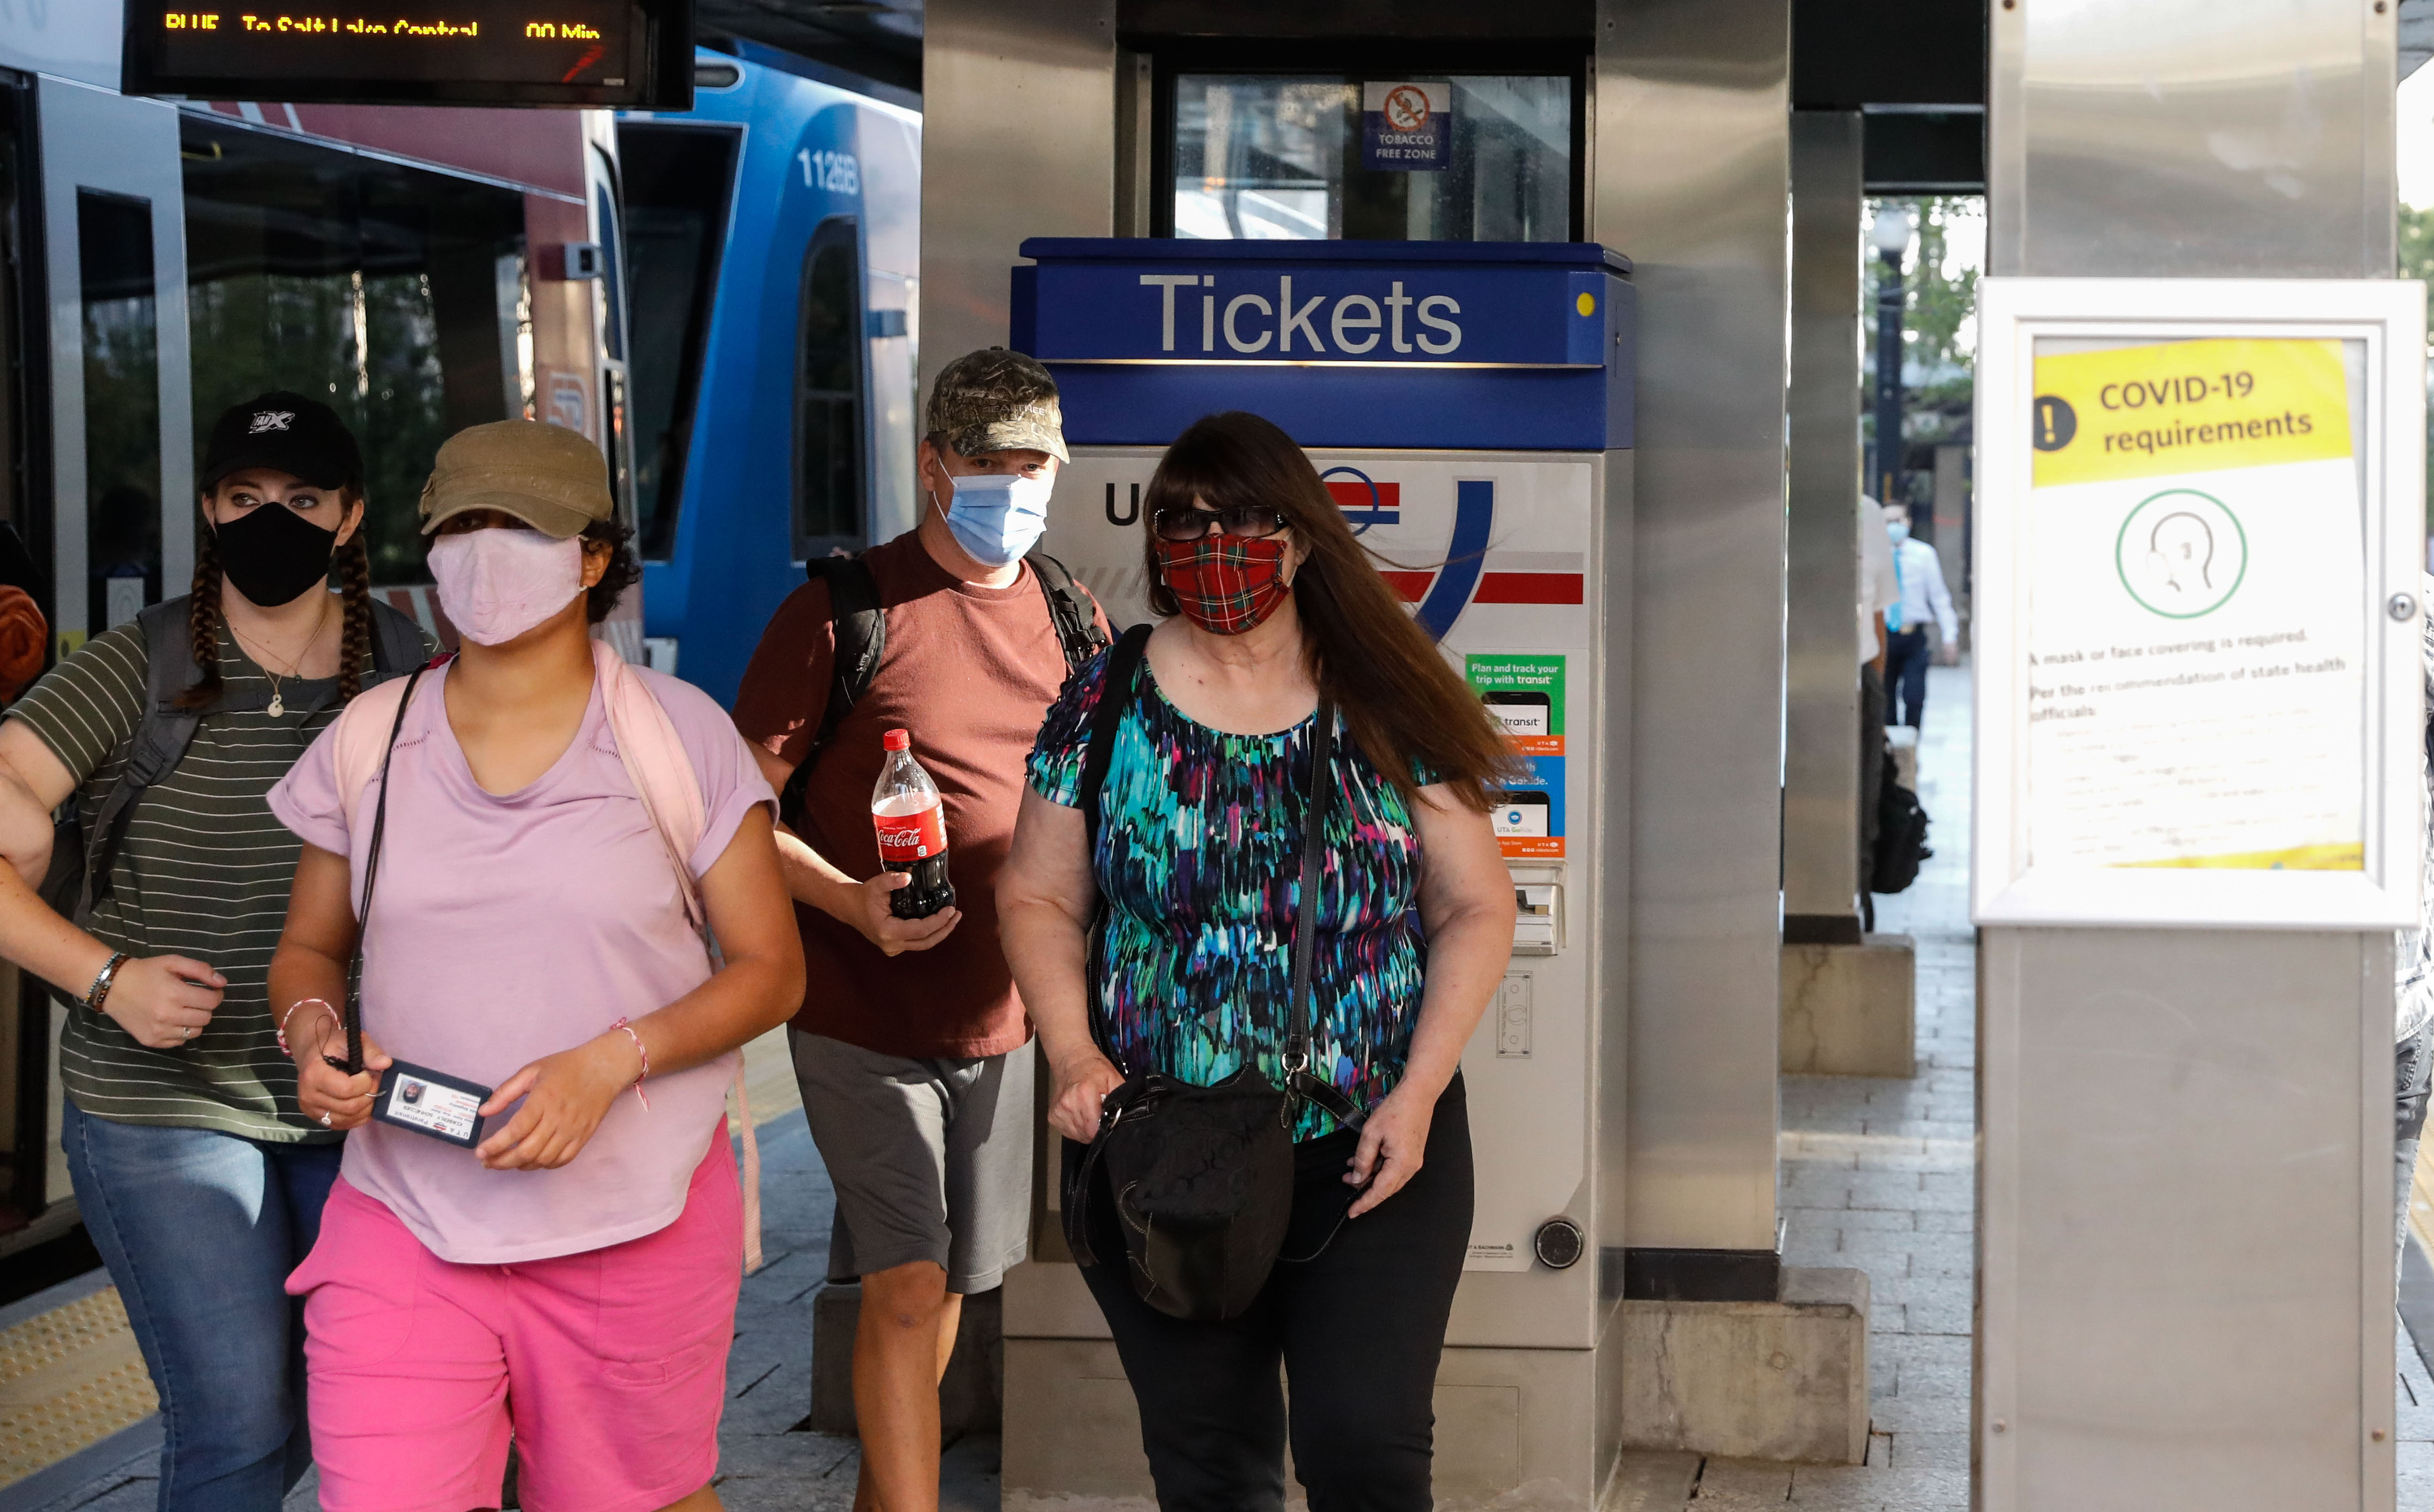 Utah Transit Authority riders wearing masks navigate the TRAX platform at the City Center Station in Salt Lake City on Wednesday, Sept. 15, 2021.